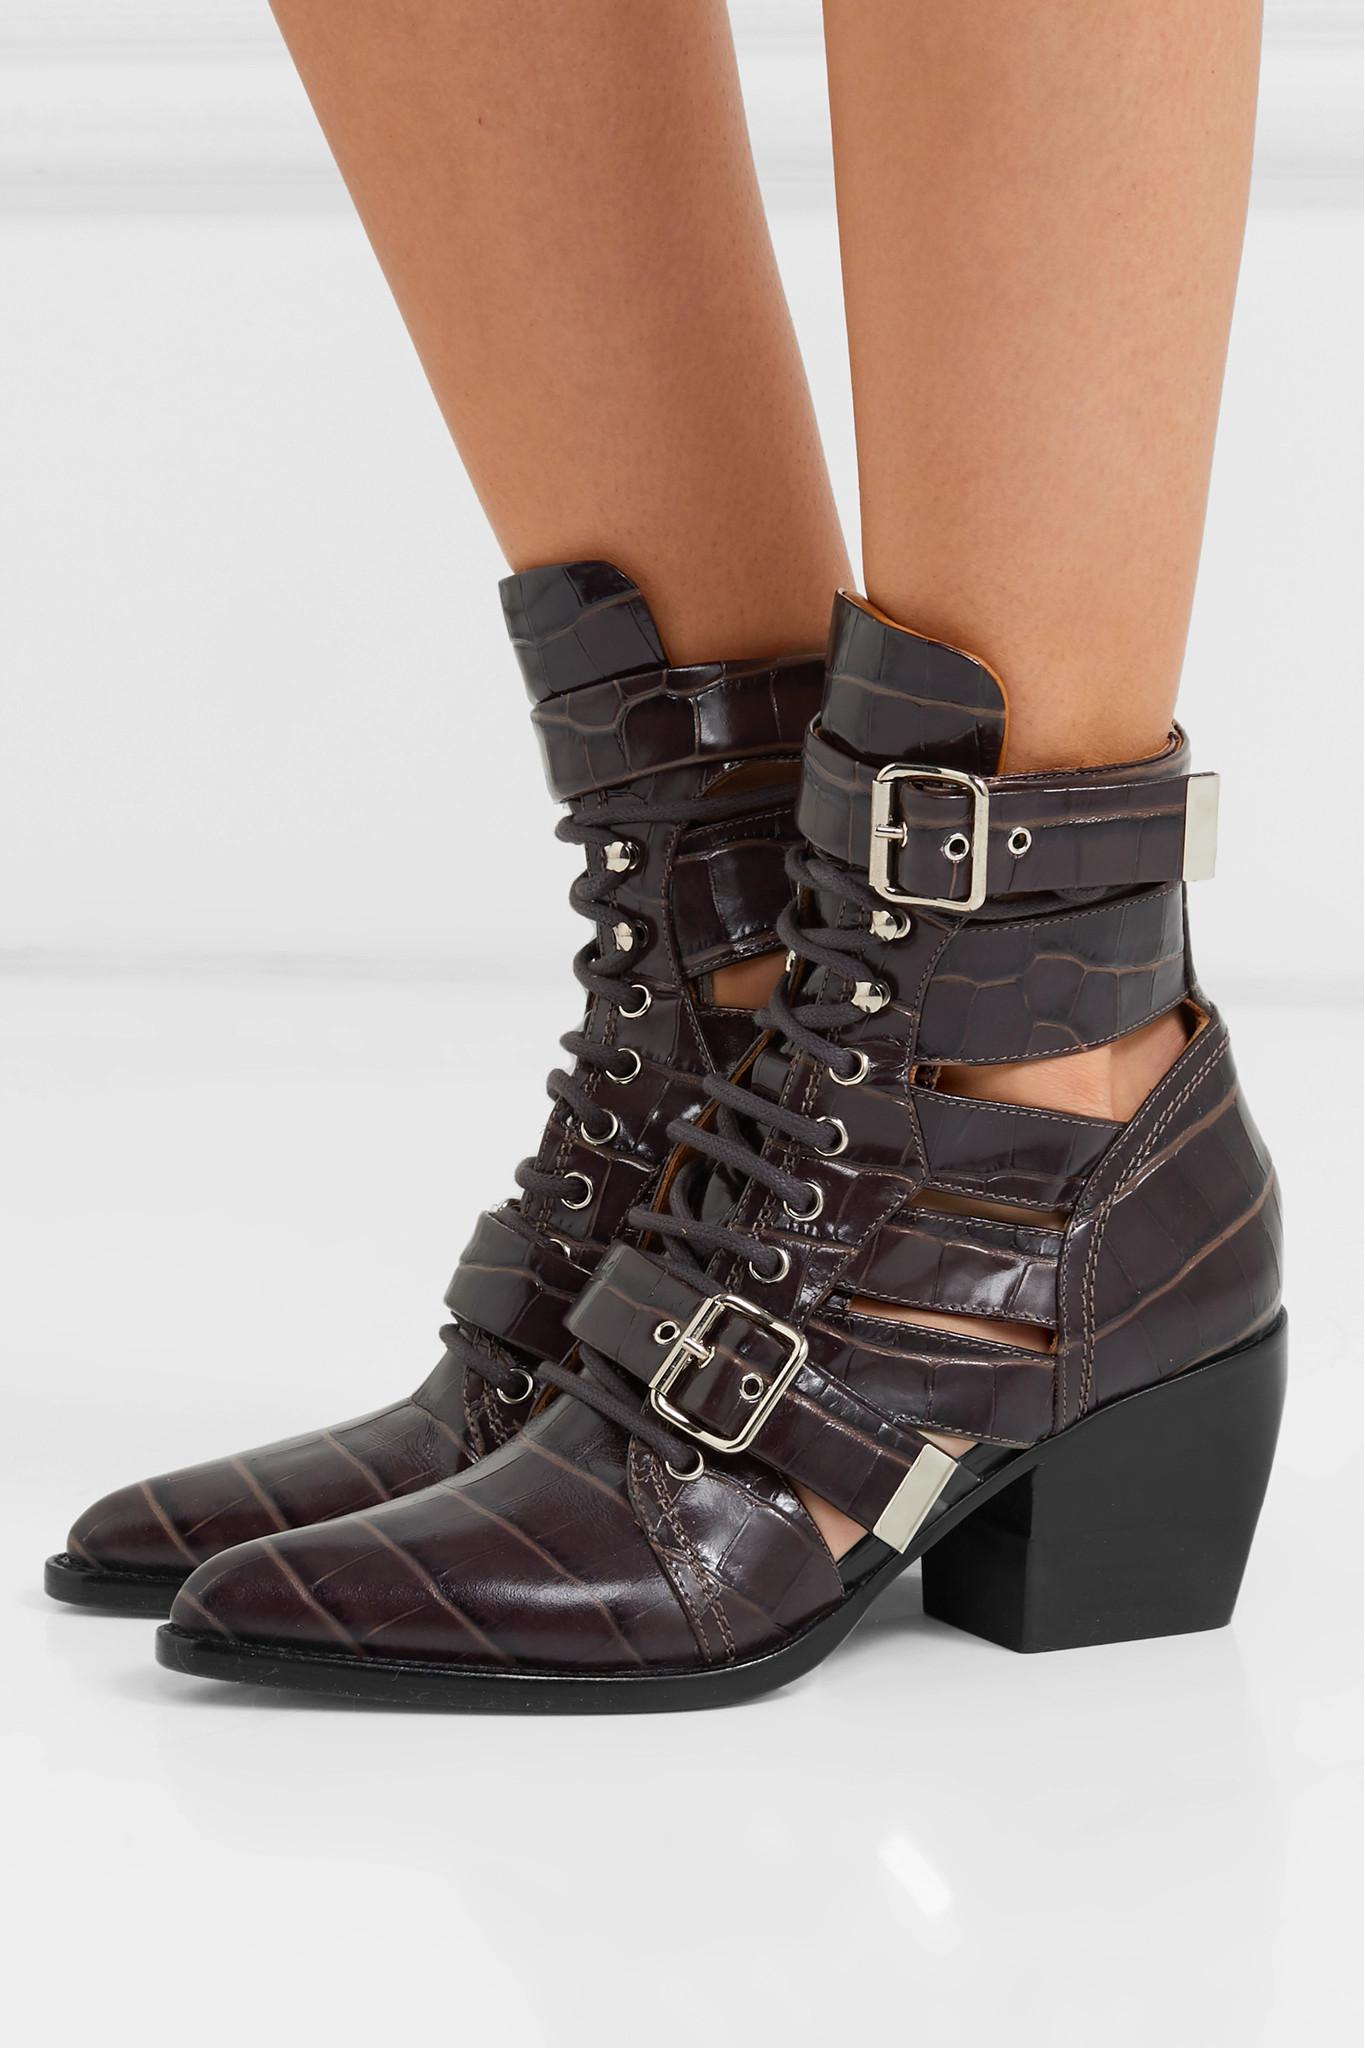 f65ae8d7bd4aa Chloé - Brown Rylee Cutout Croc-effect Leather Ankle Boots - Lyst. View  fullscreen